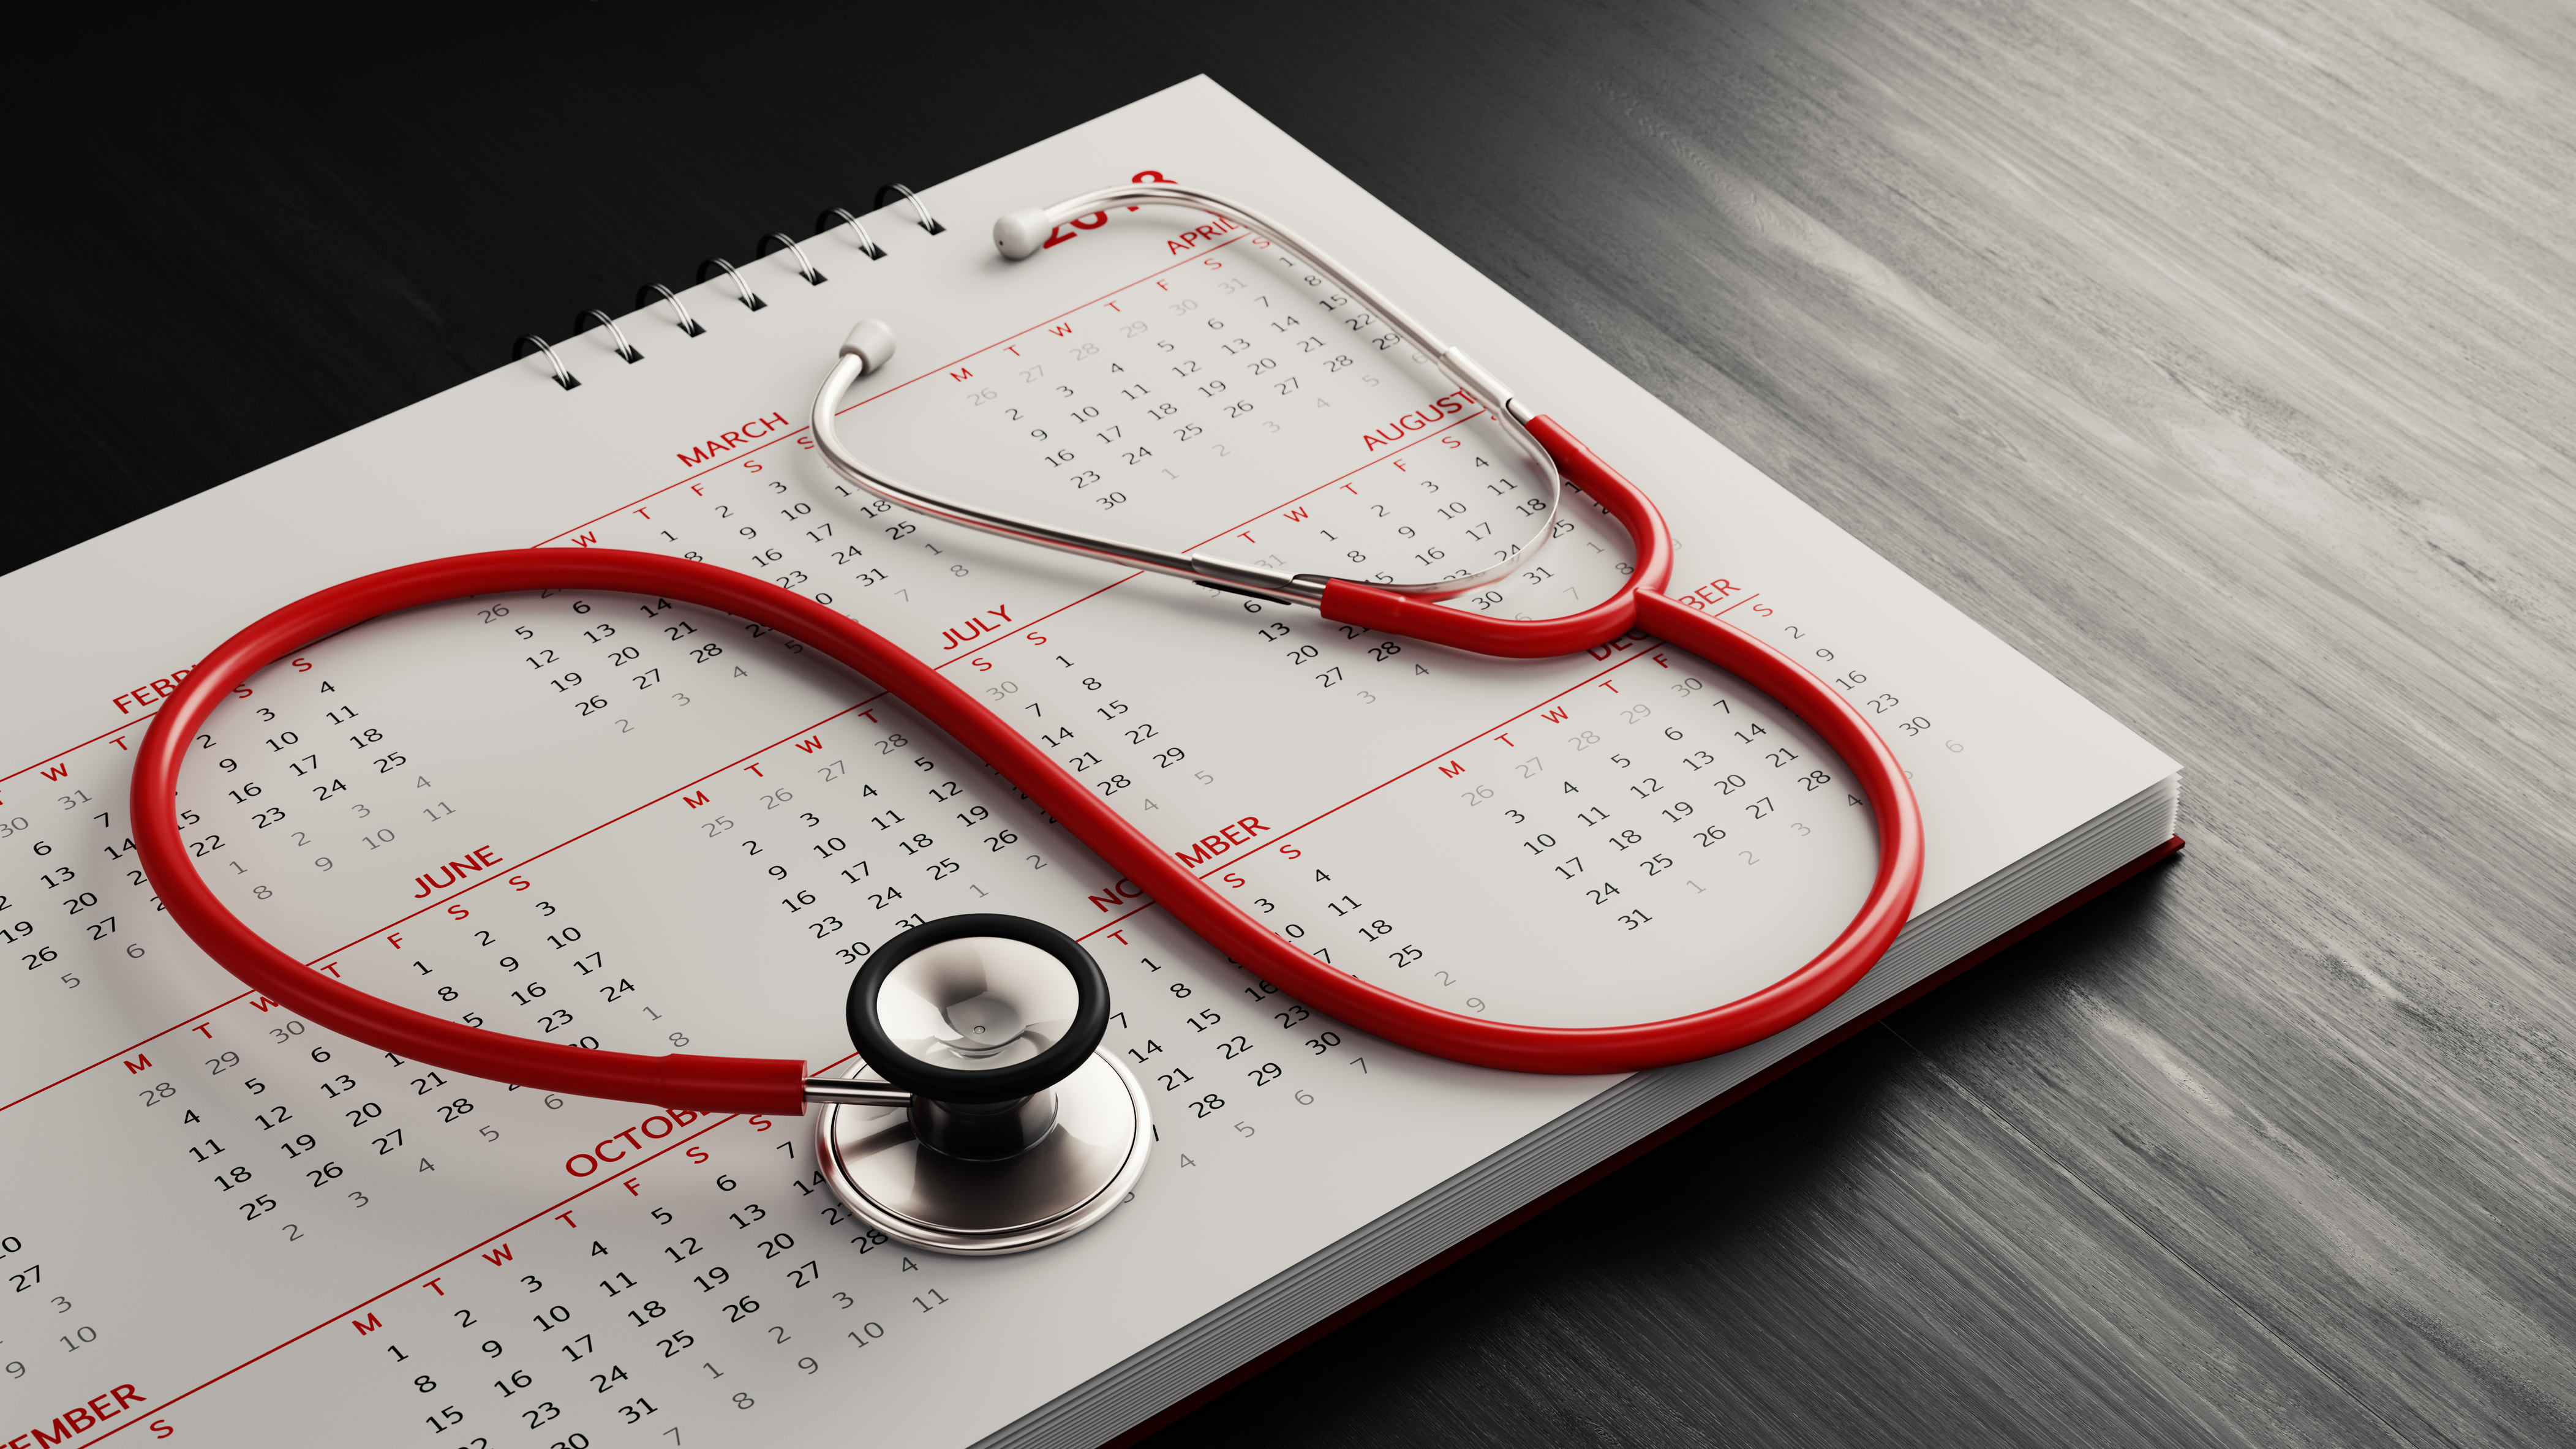 Red Stethoscope And A Calendar On Black Wood Surface